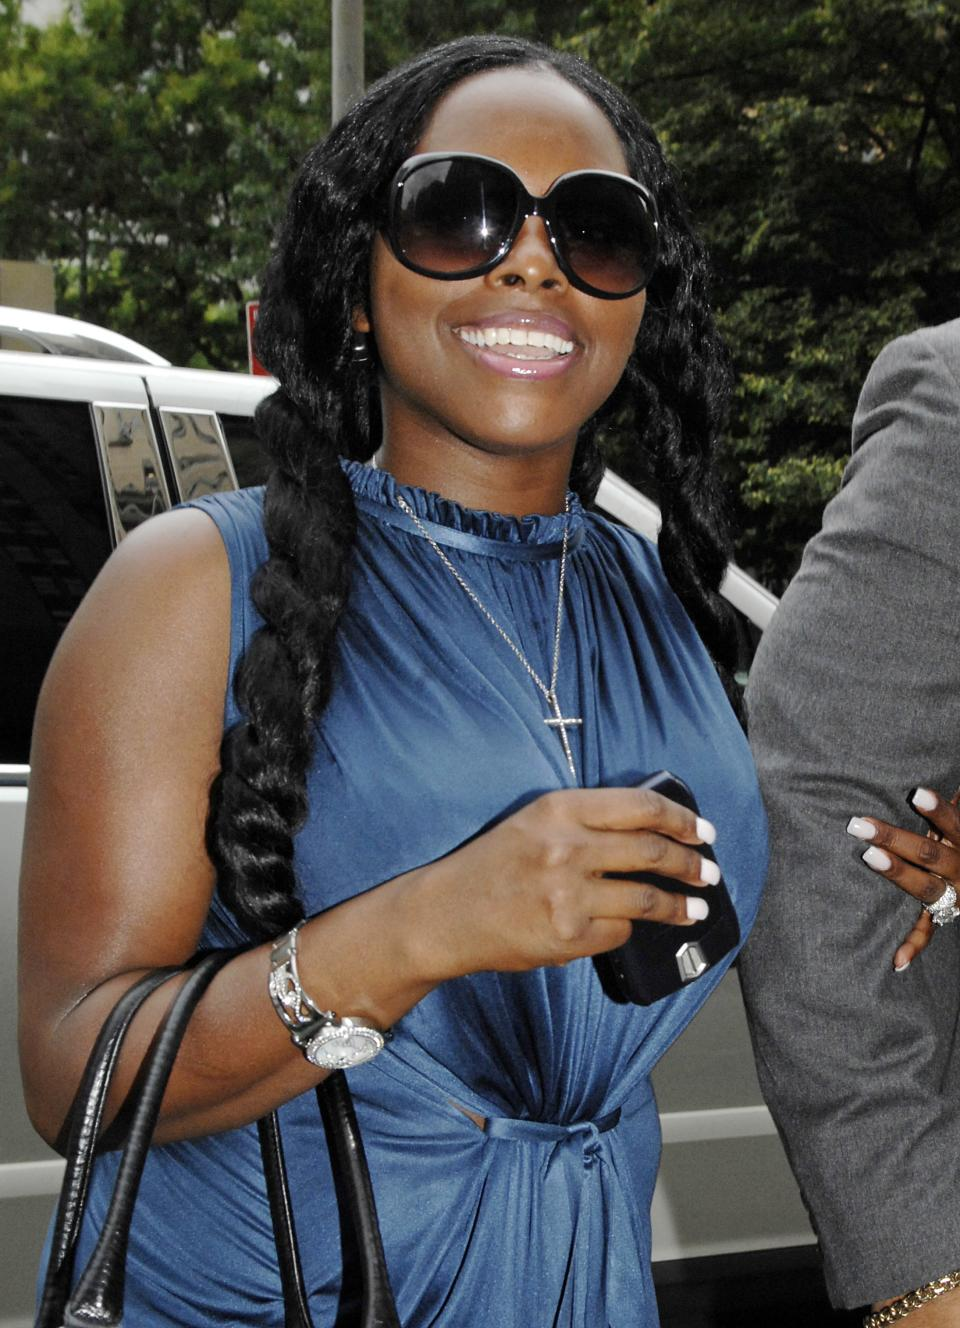 FILE - In this Aug, 22, 2007 file photo, Foxy Brown, whose birth name is Inga Marchand, enters Manhattan criminal court, in New York.  Brown is due in court Tuesday July 12, 2011 on charges she violated a court order by mooning her neighbor.   (AP Photo/ Louis Lanzano/file)